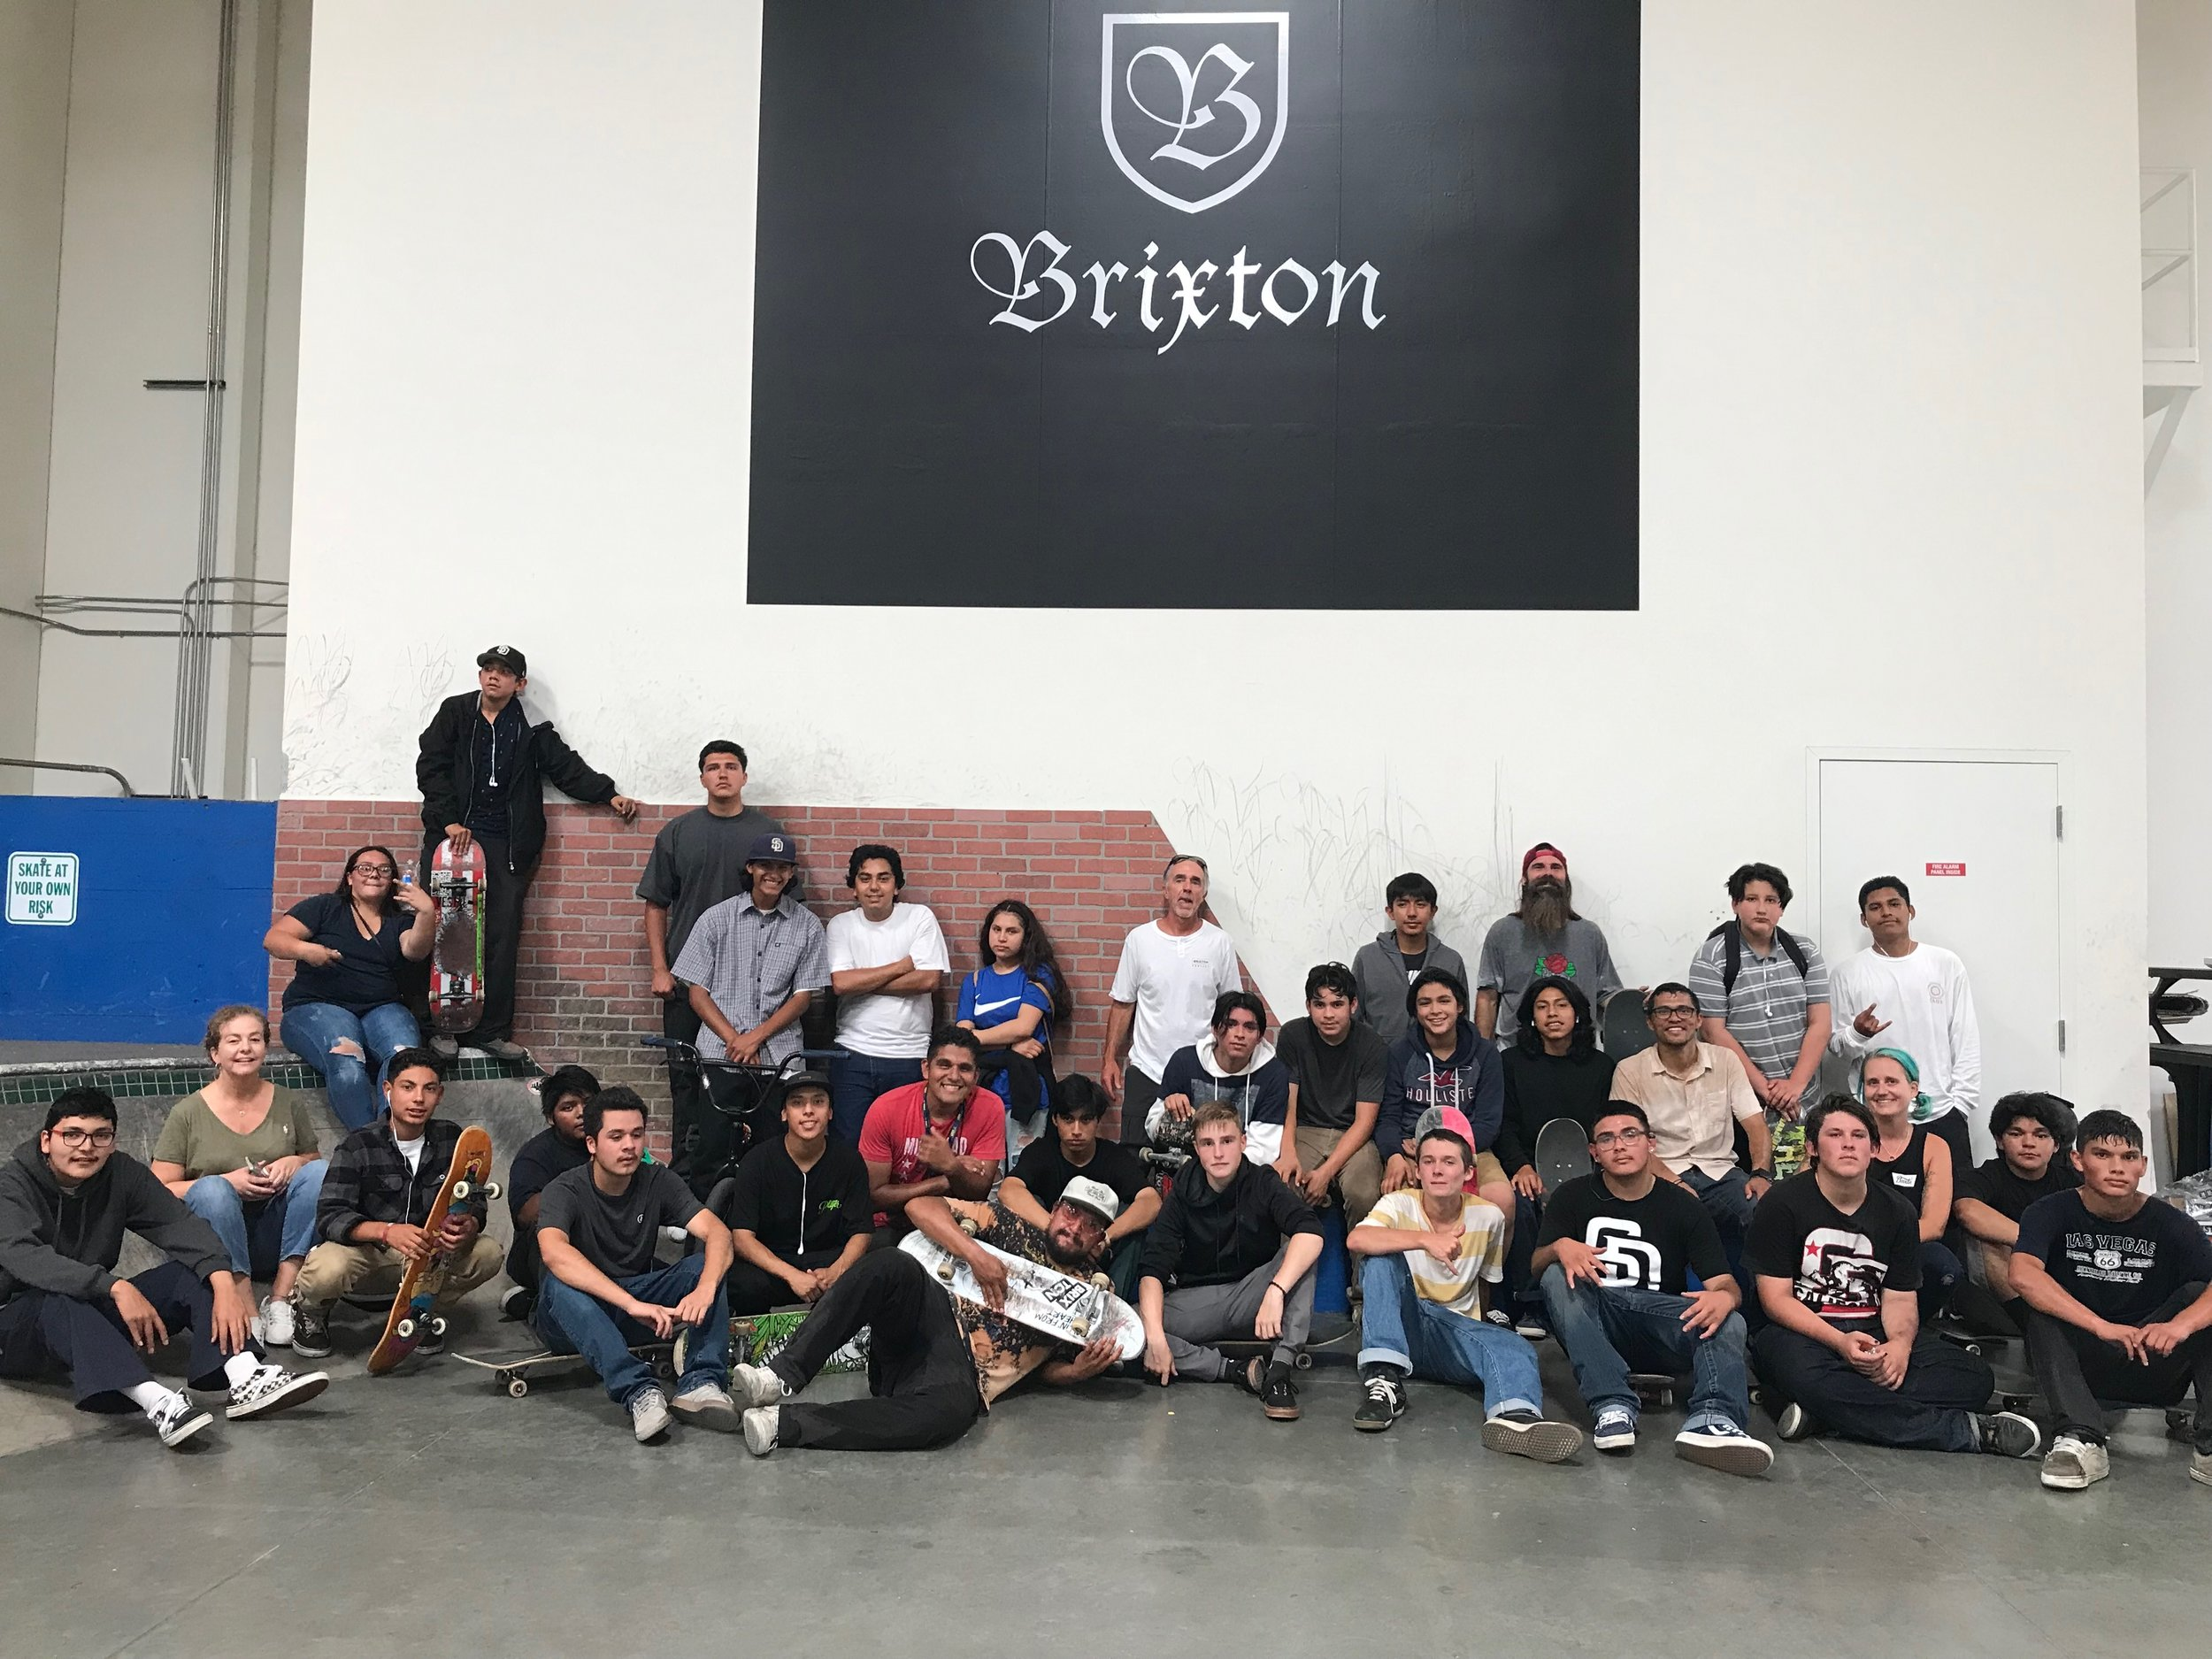 Brixton Career Day - July 2019We took kids from two of our programs in Vista to Brixton for a career talk and tour of their facilities. They got to skate their private park as well. We are thankful to Brixton for all they do for our organization.